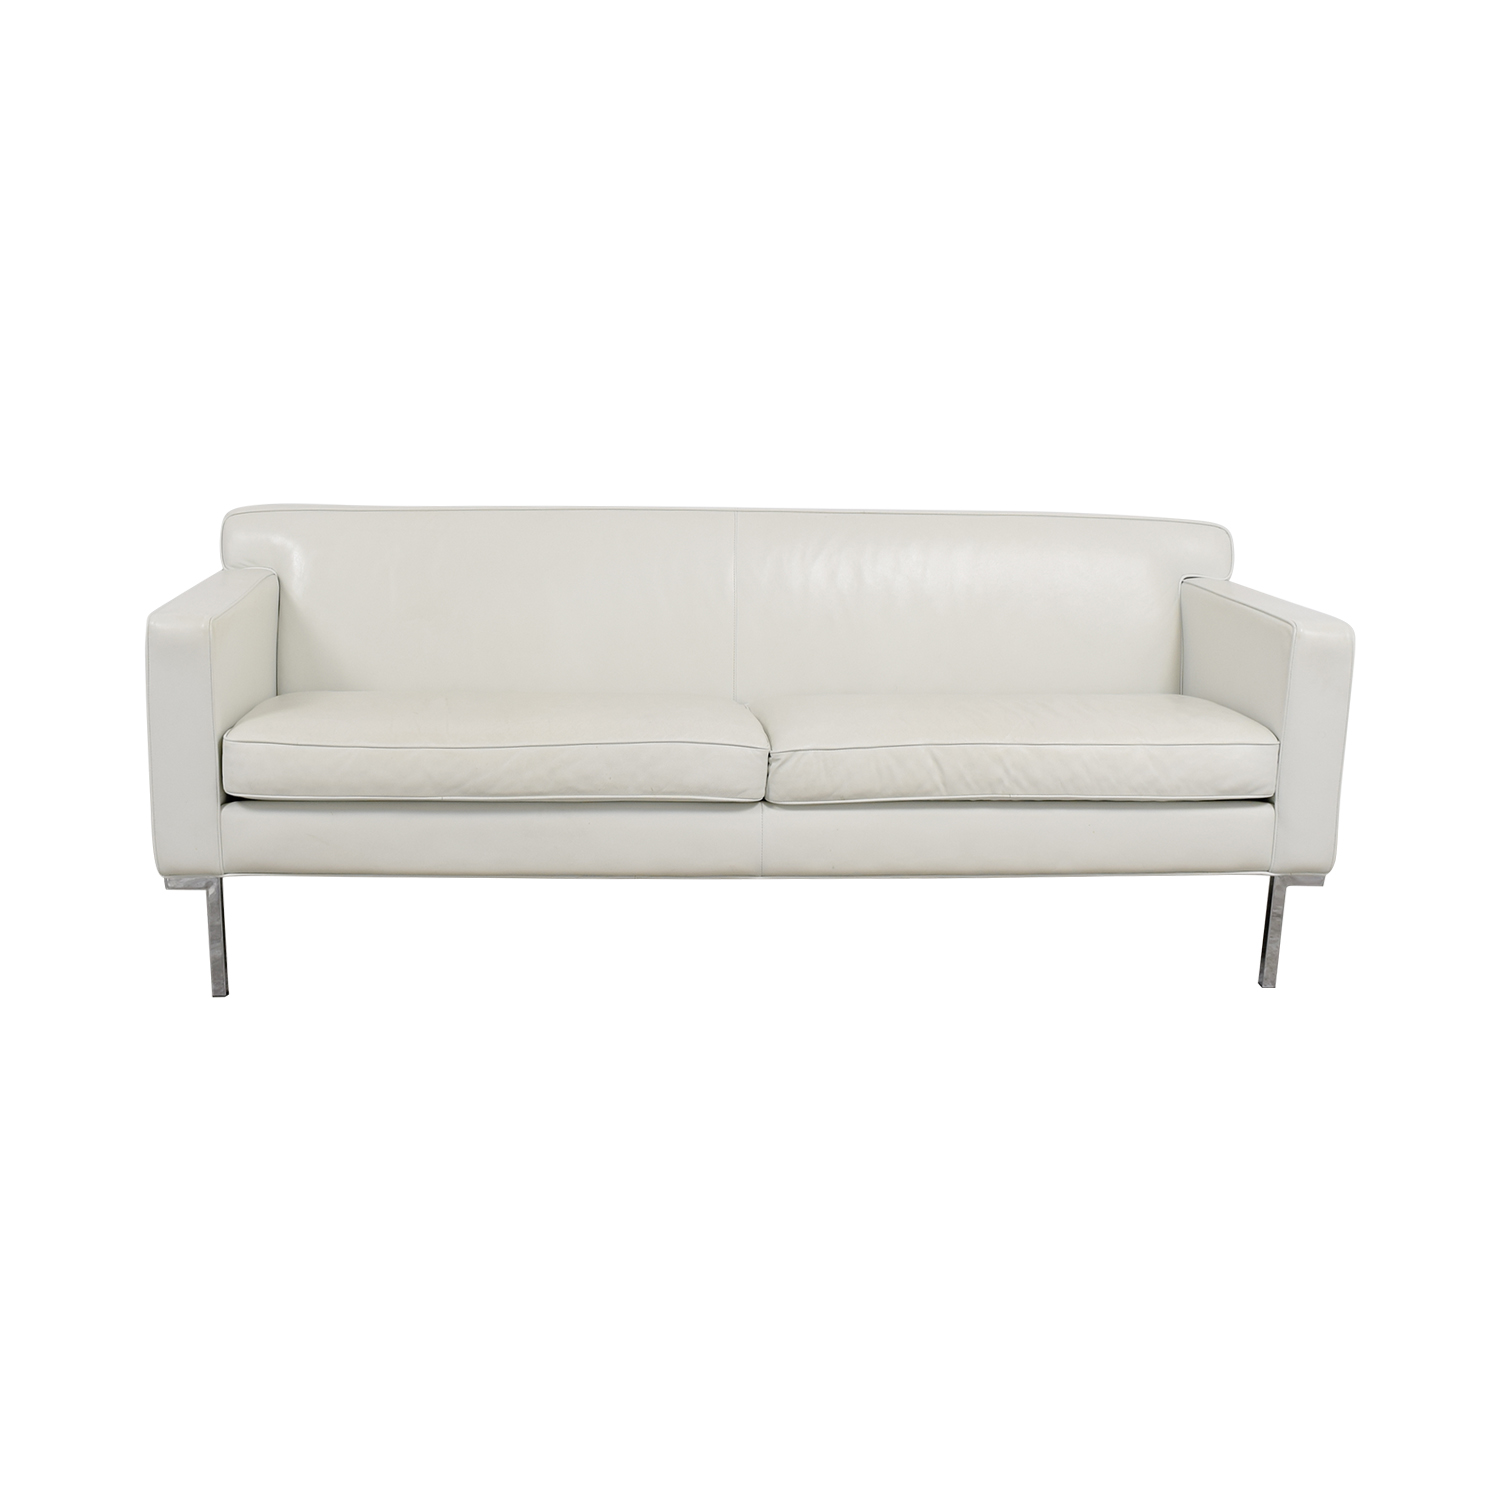 Design Within Reach Design Within Reach White Leather Couch for sale